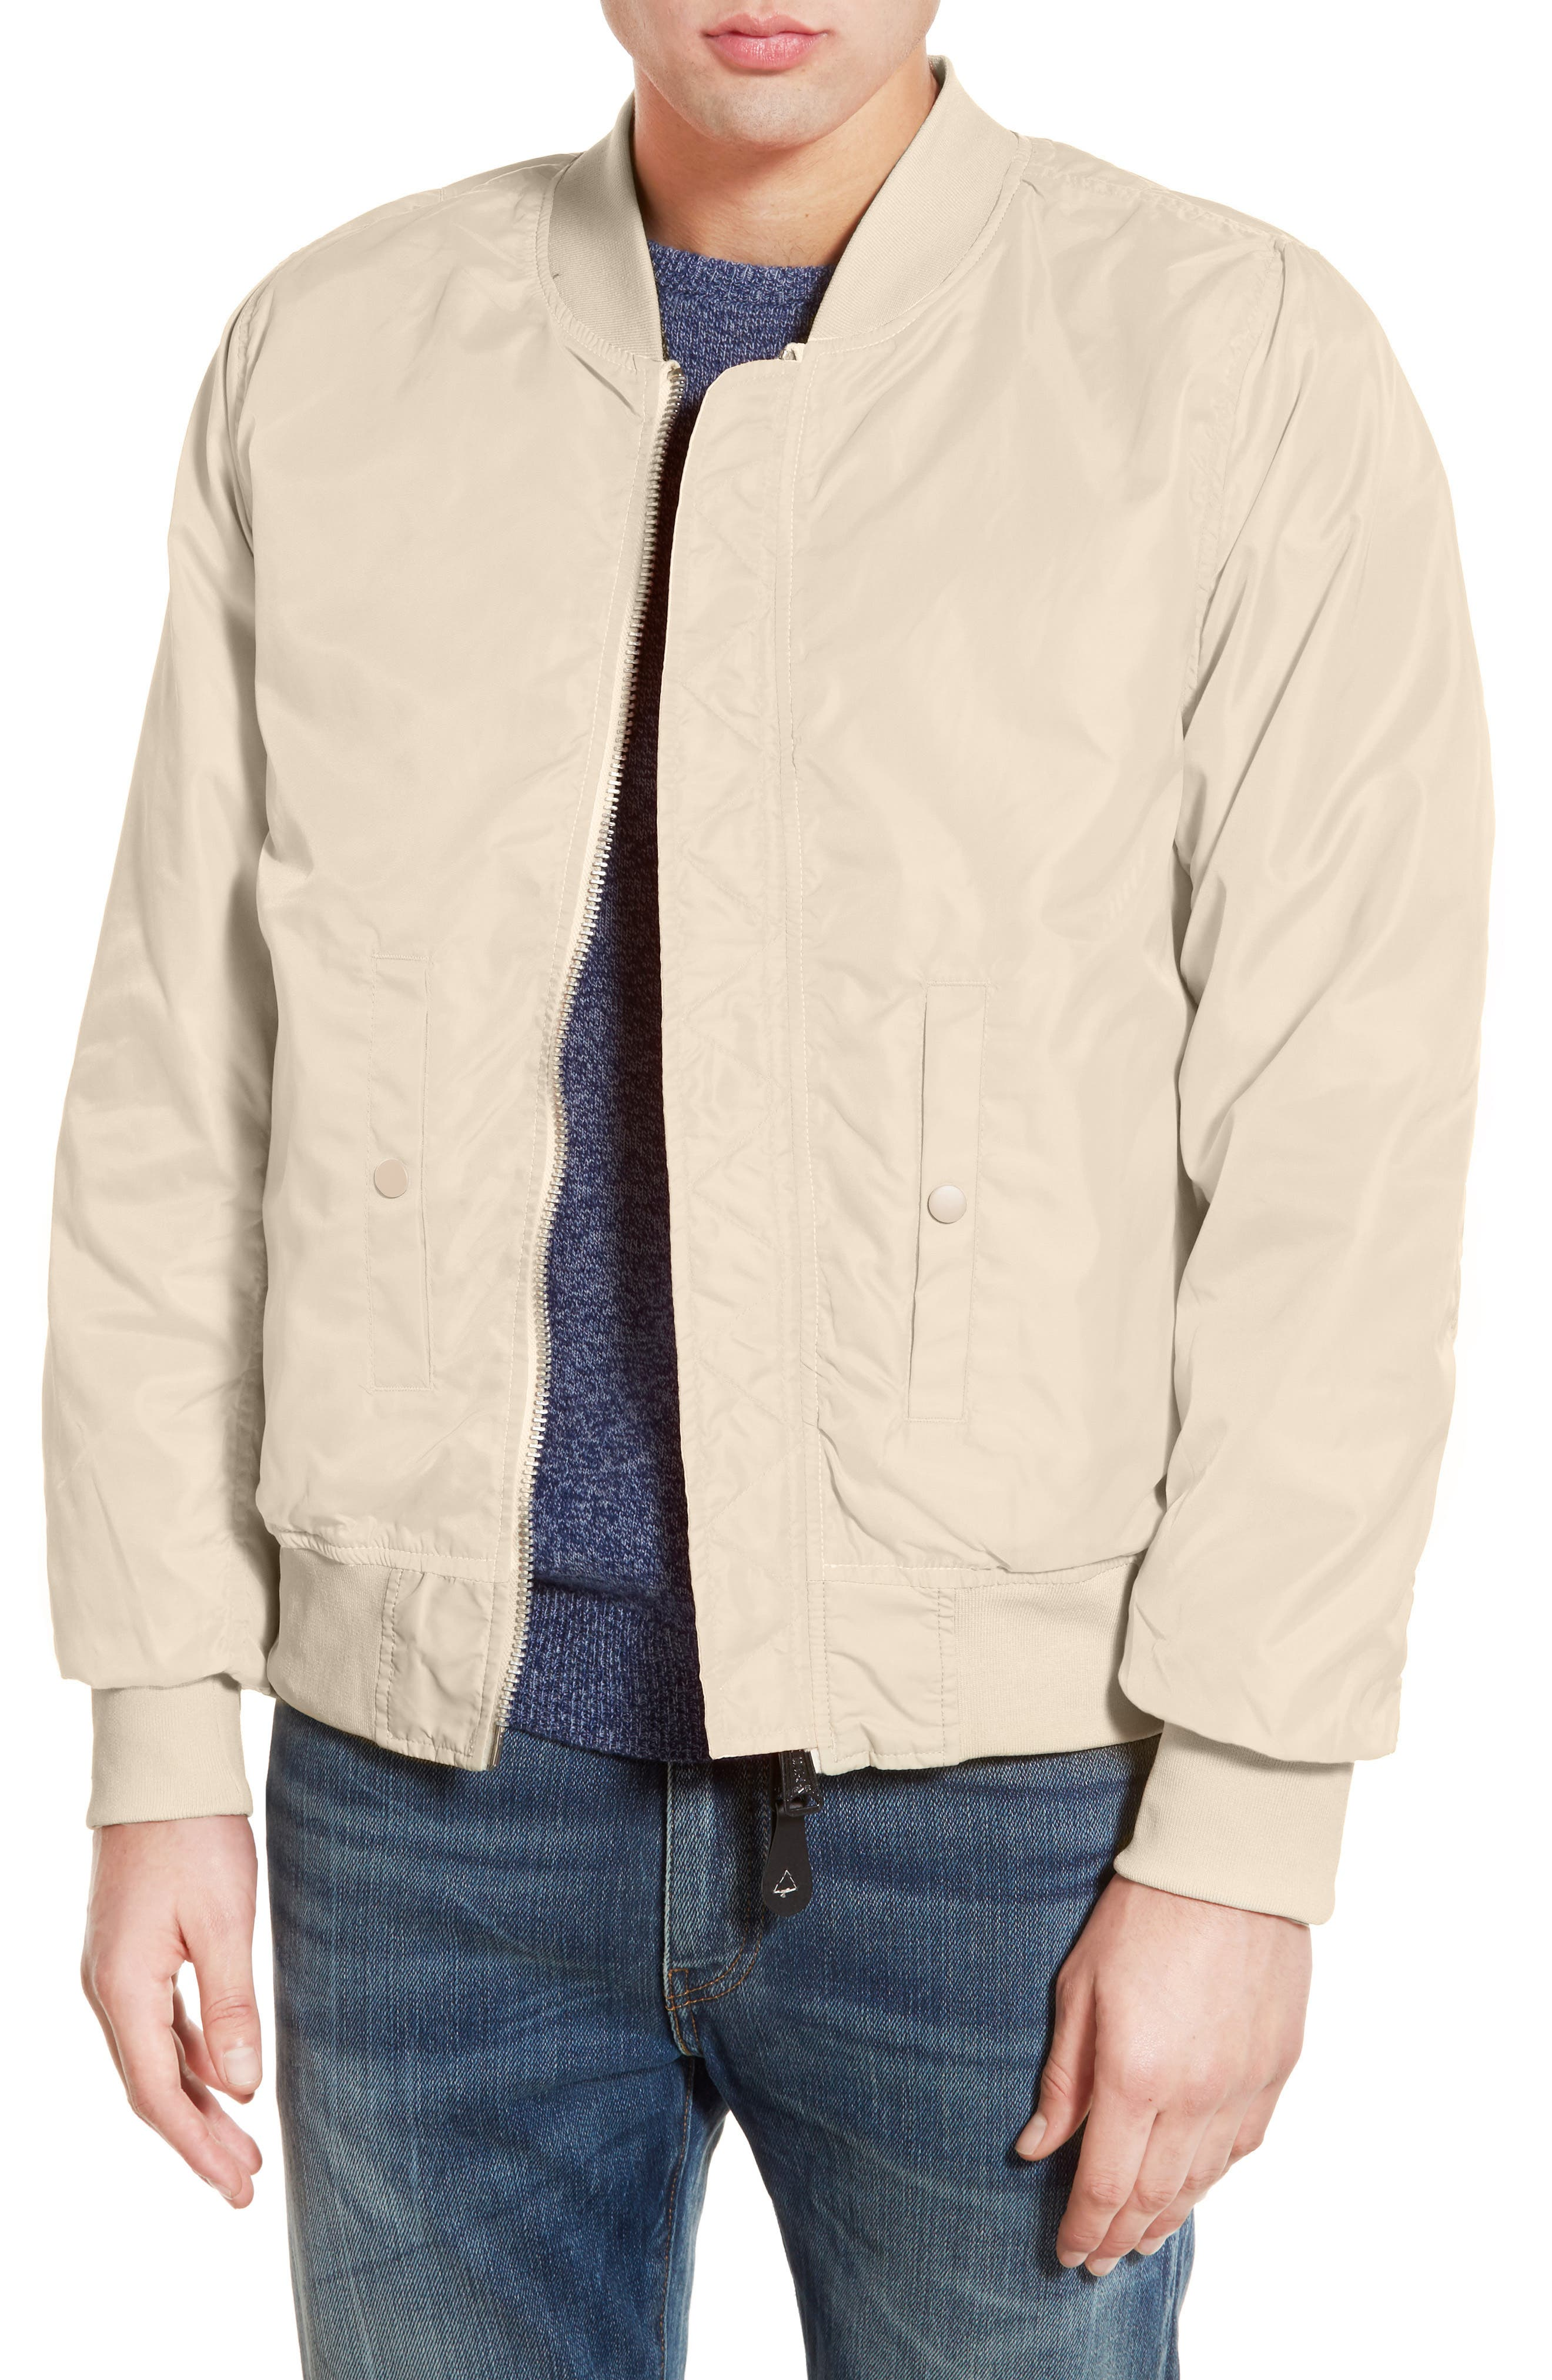 LB-2 Scout Reversible Flight Jacket,                             Alternate thumbnail 36, color,